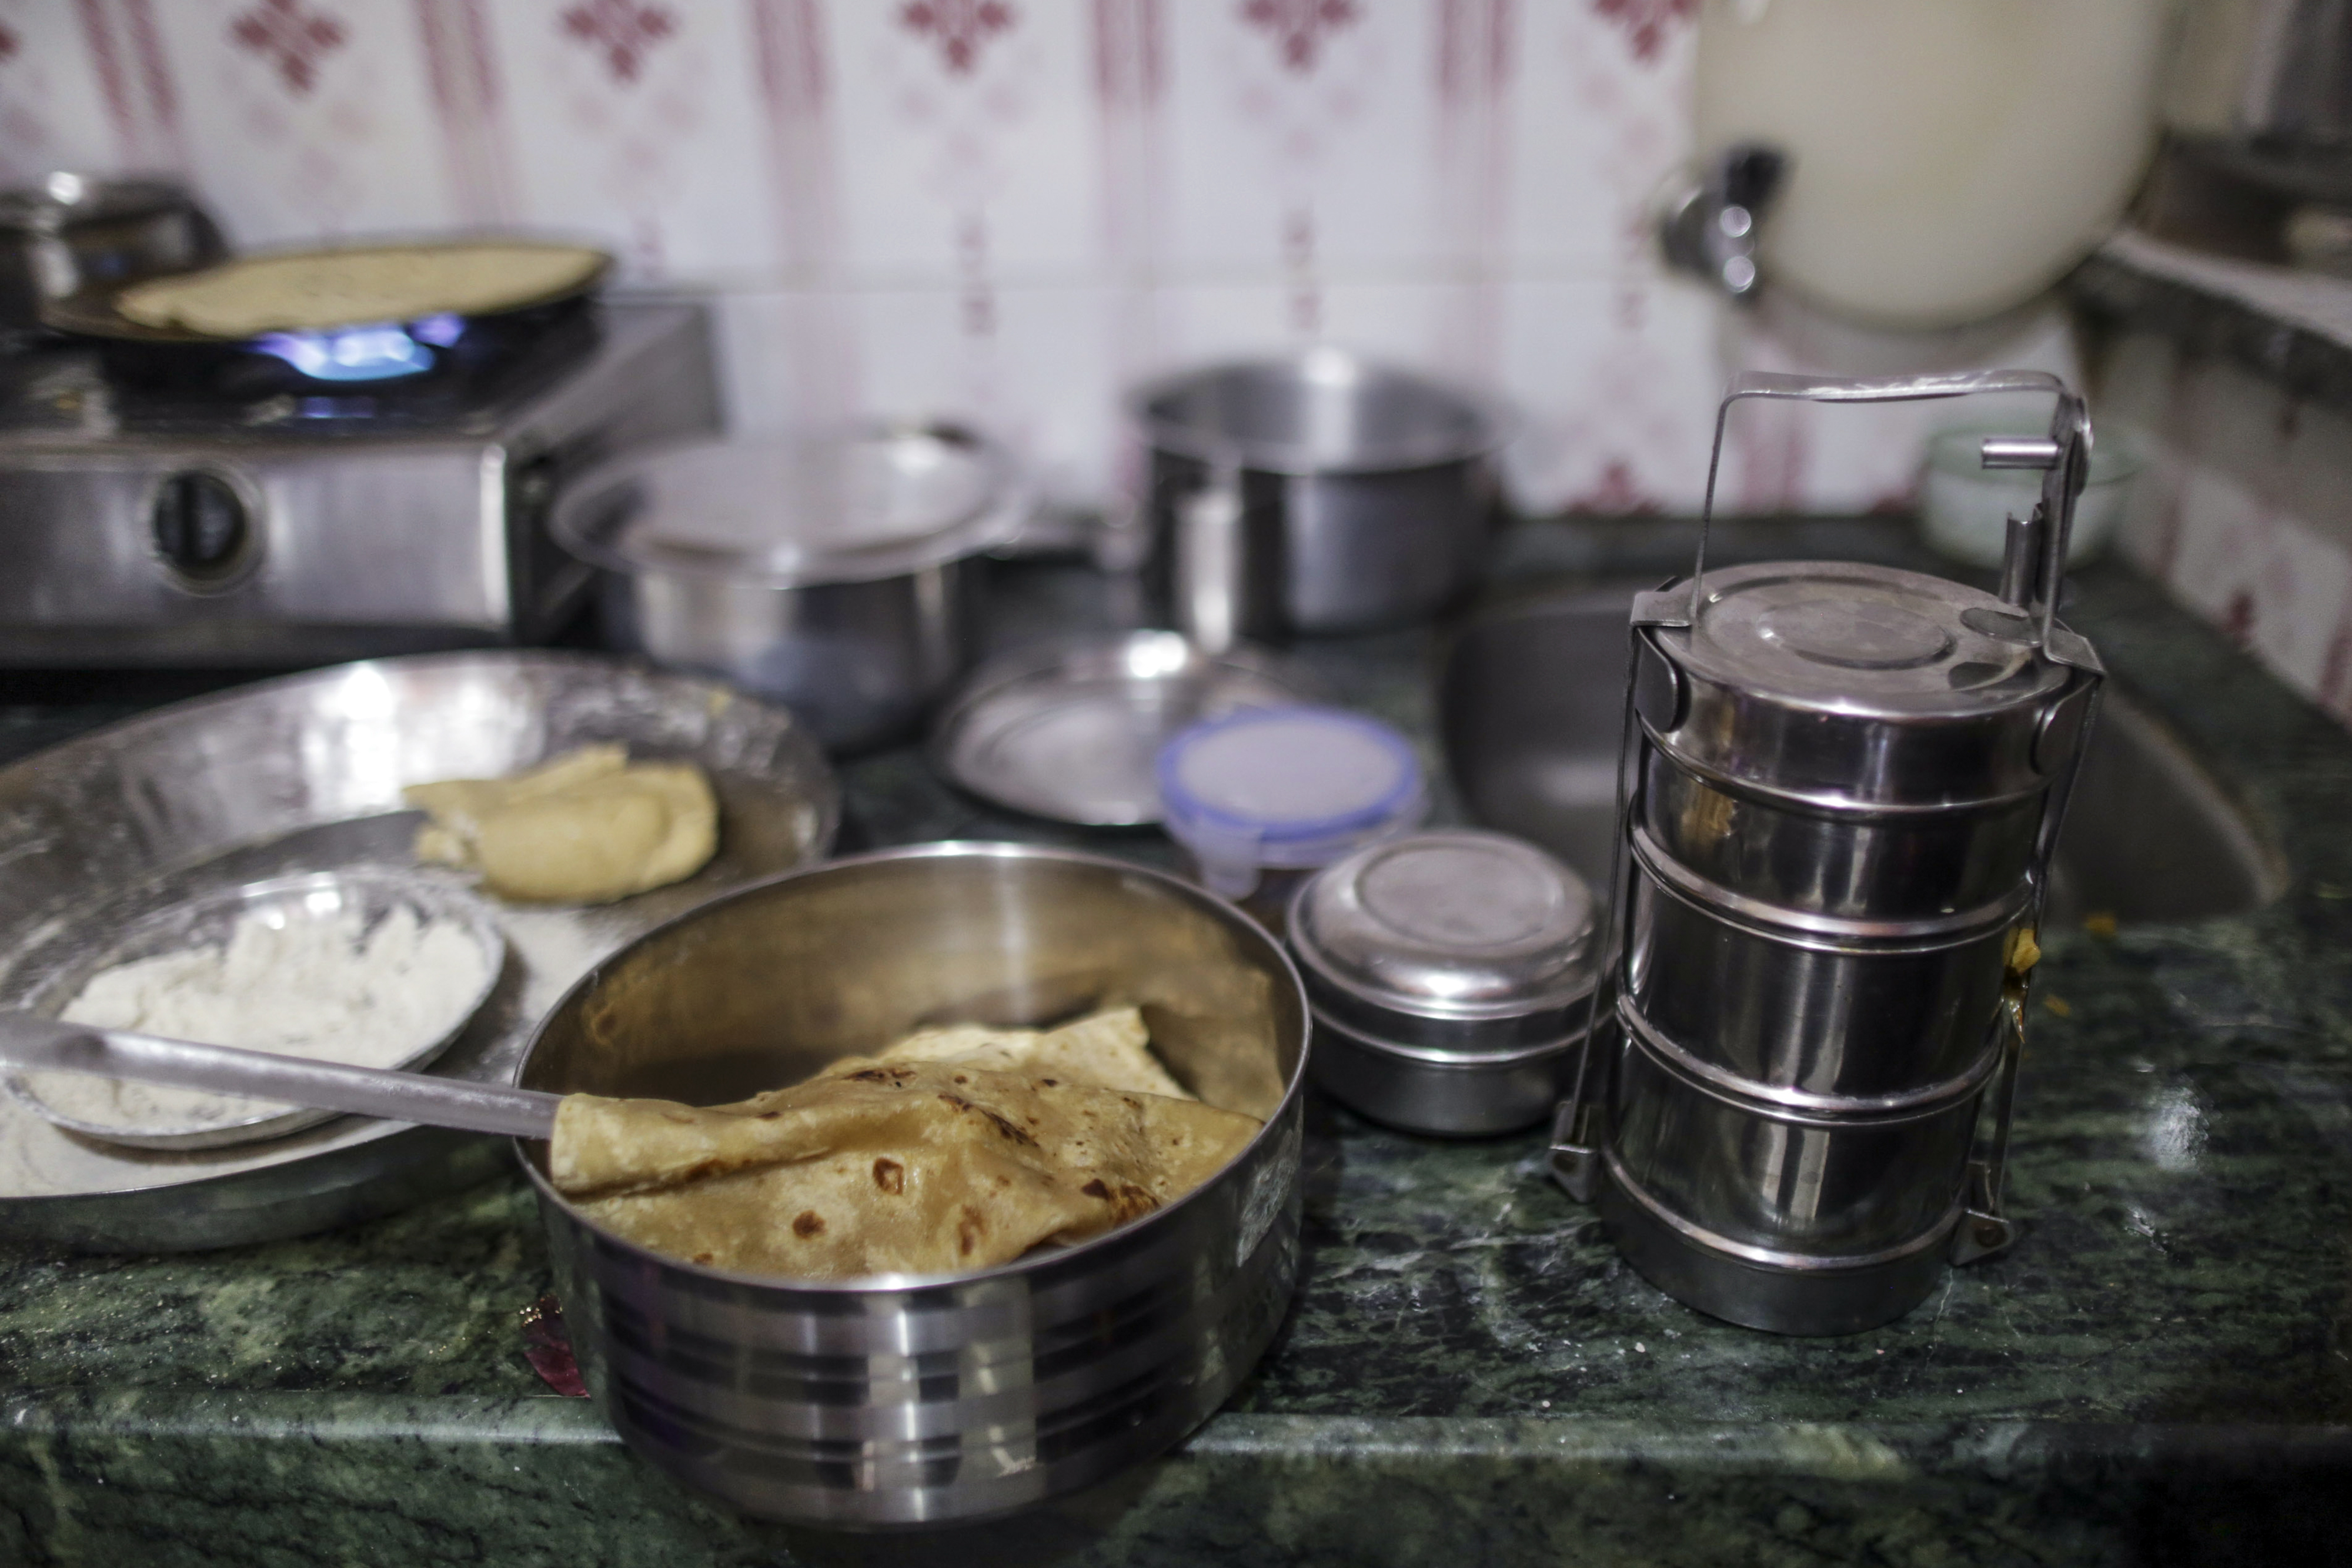 Indian bread sits inside a tiffin boxon a kitchen counter